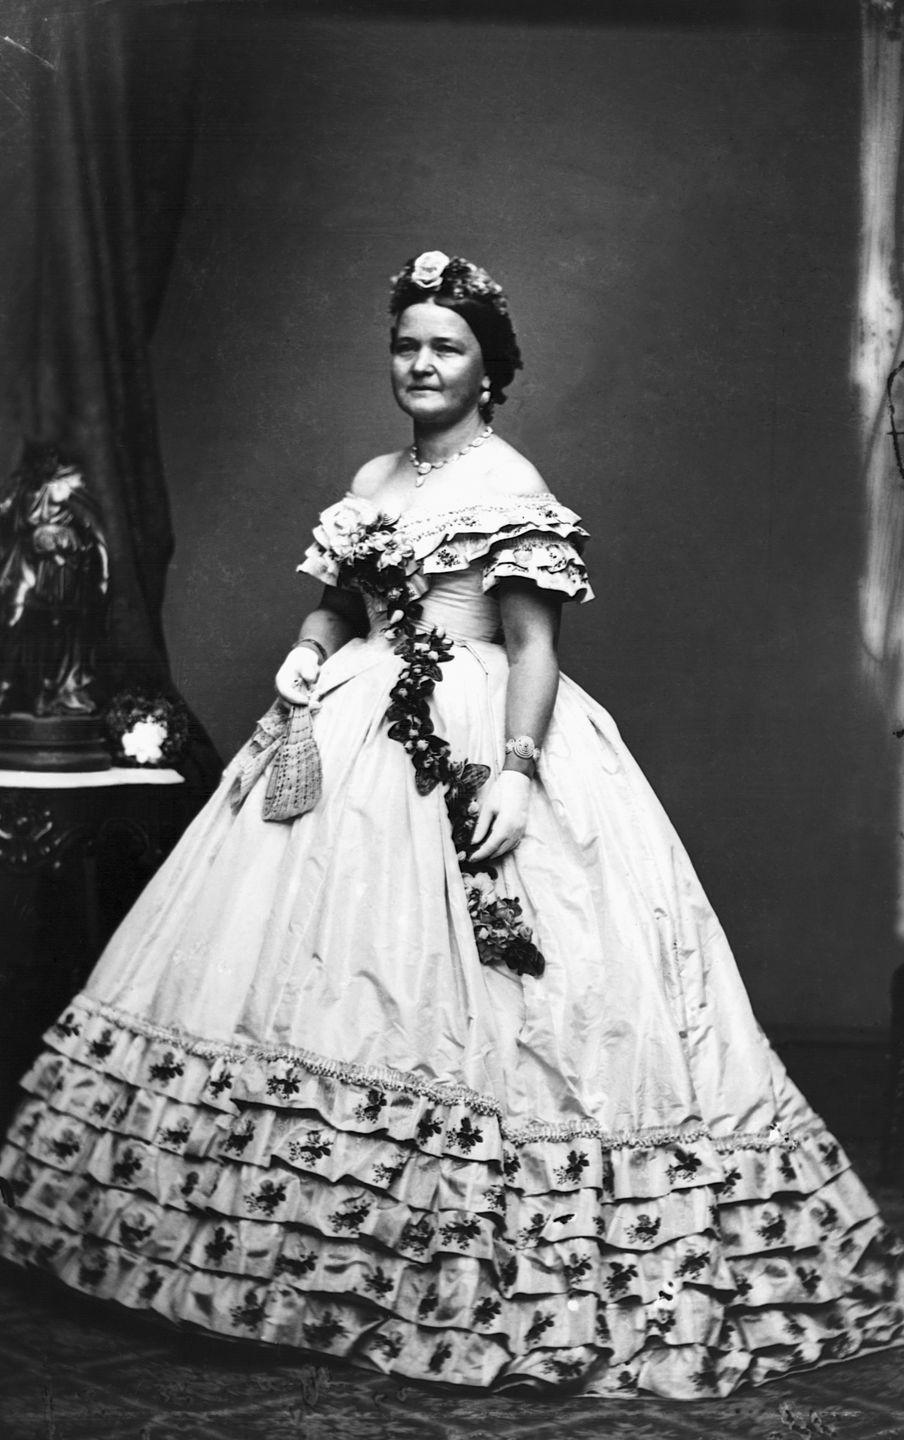 <p>Ruffles, large skirts, and extravagant details like flowers or embroidery were popular in the mid-19th century. If you've ever seen <em>Gone with the Wind</em><em>,</em> you know what we're talking about.  </p>